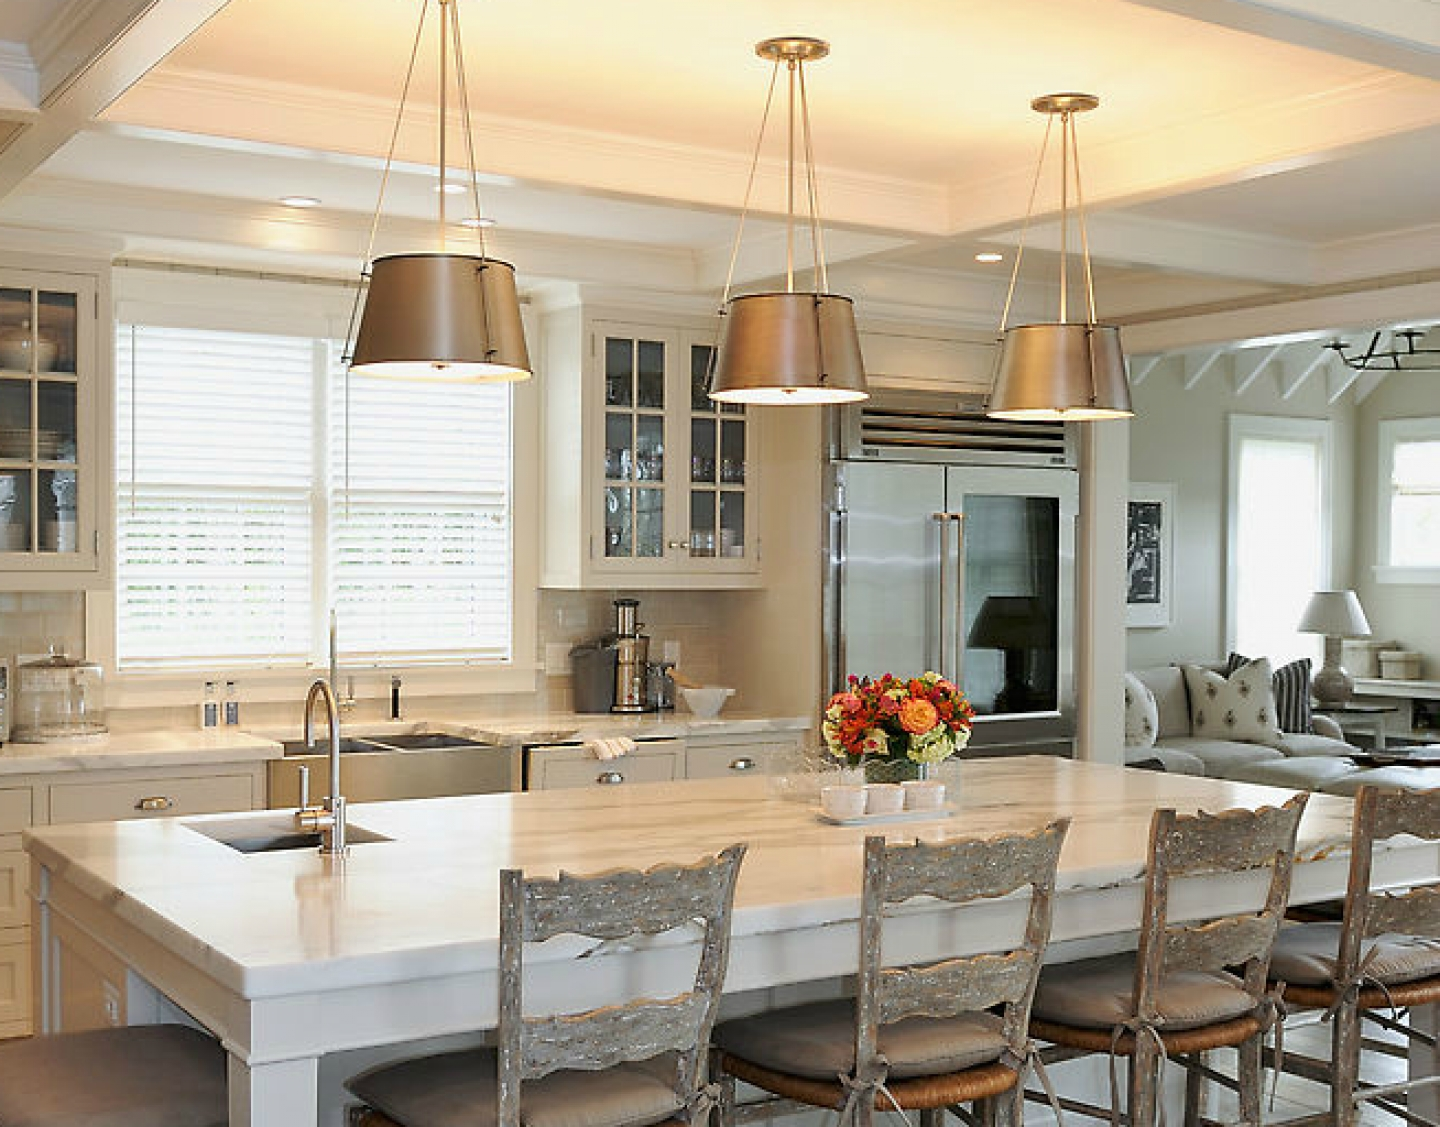 modern french country kitchen designs country kitchen designs modern french country kitchen designs photo 1